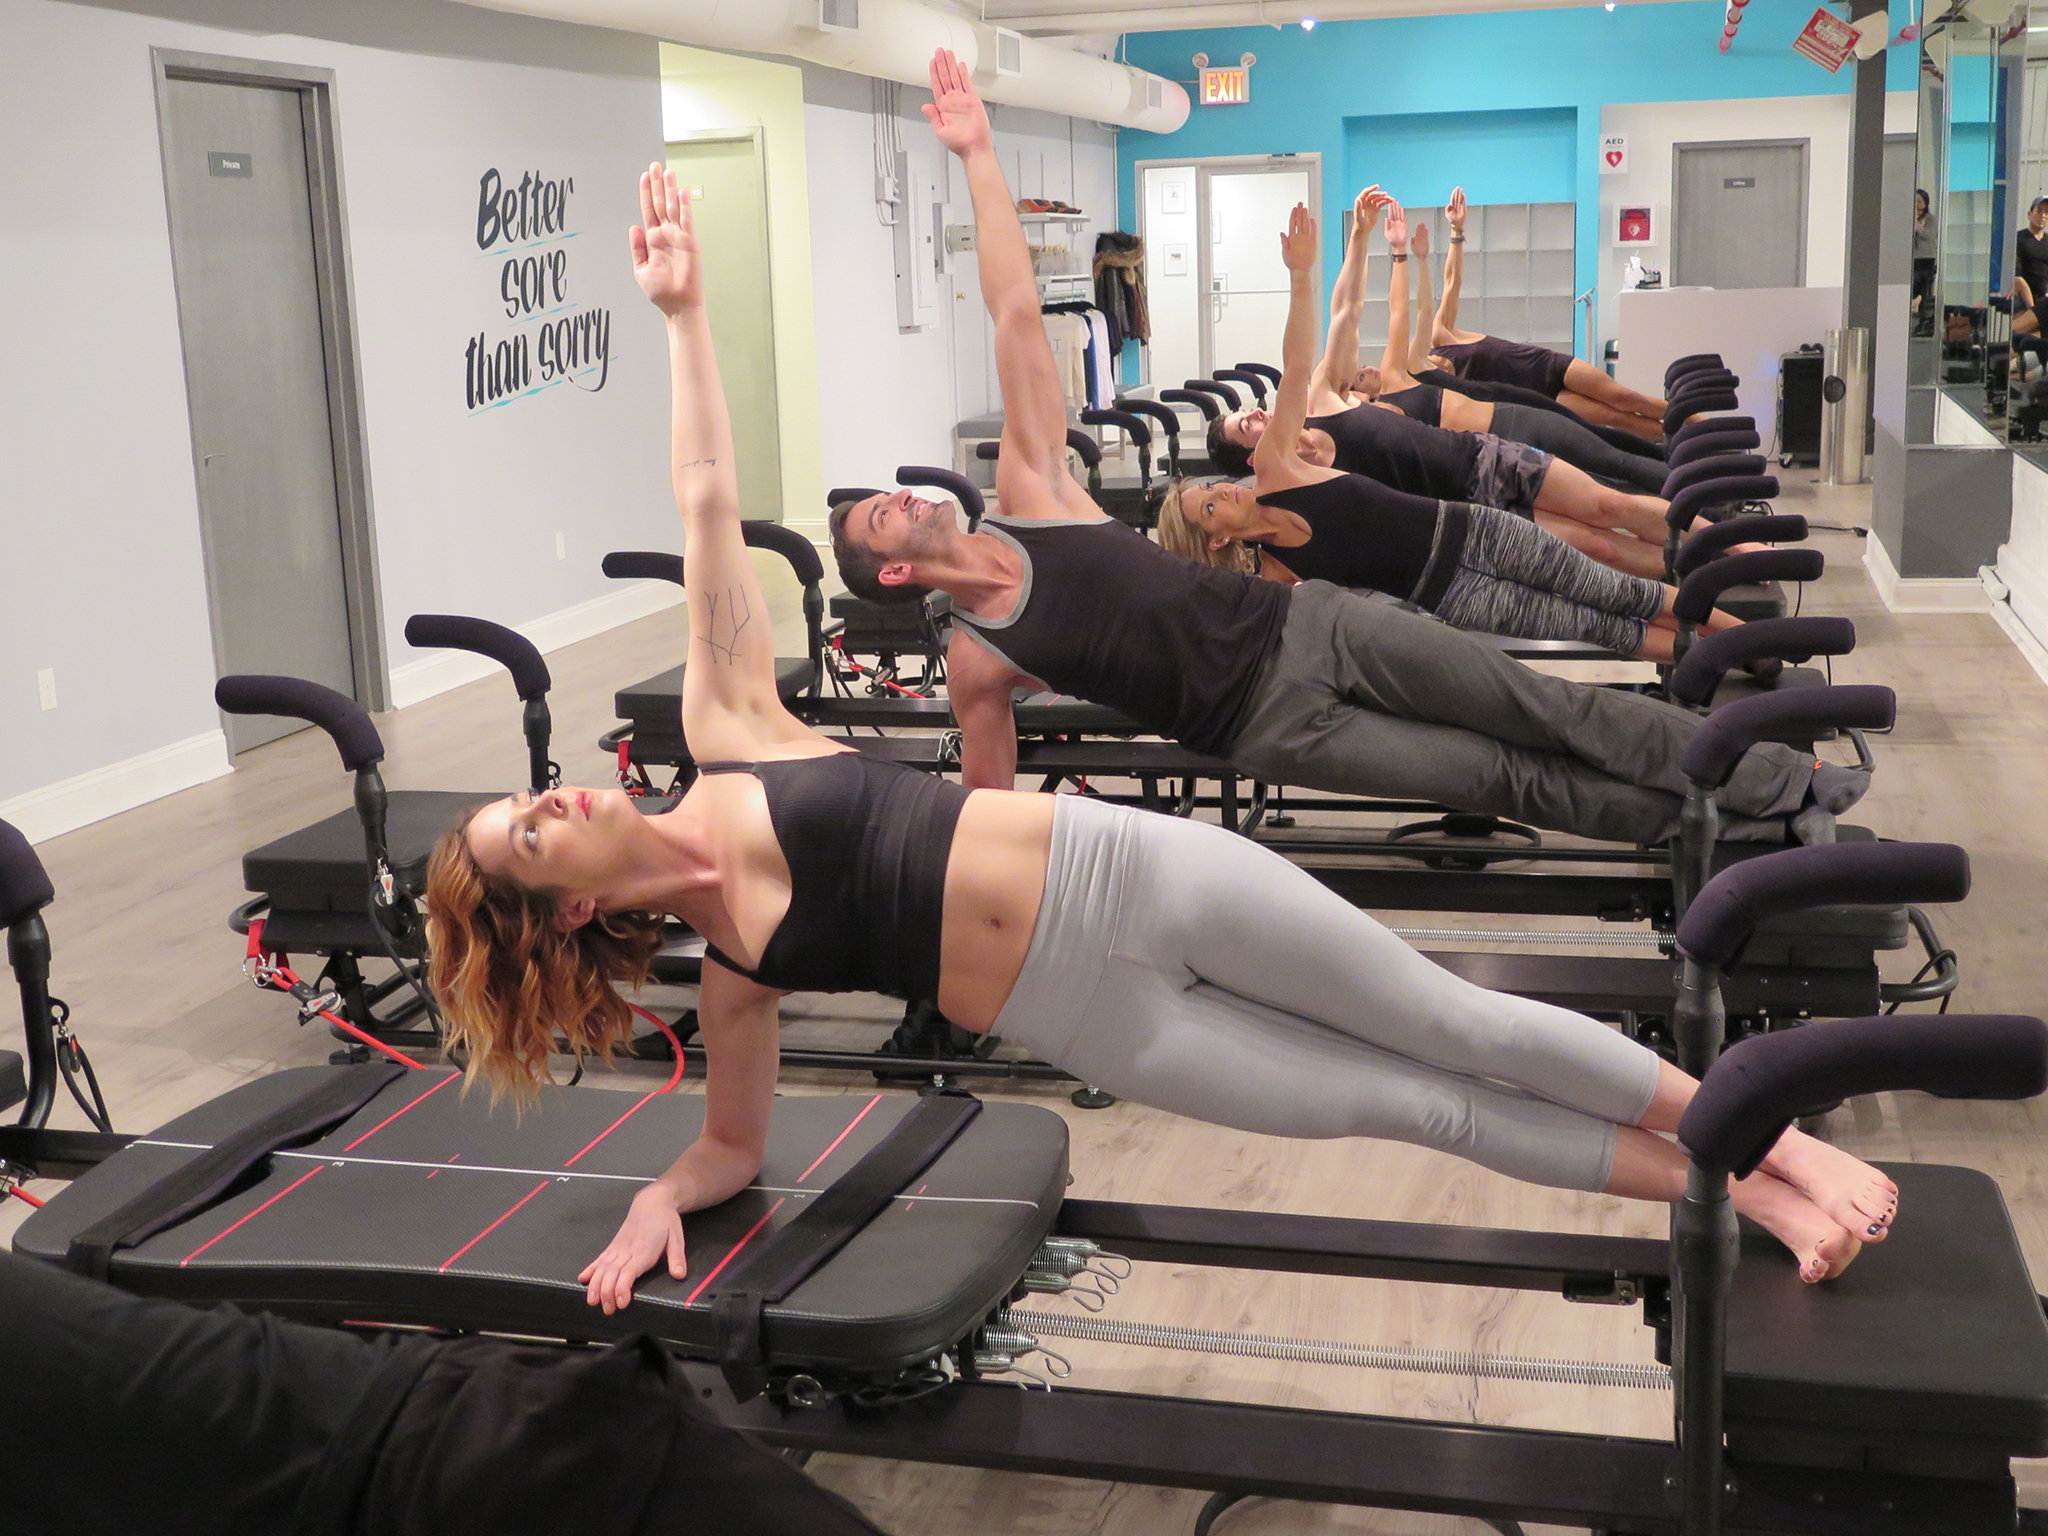 SLT (Strengthen Lengthen Tone), 15 amazing workouts for Valentine's Day